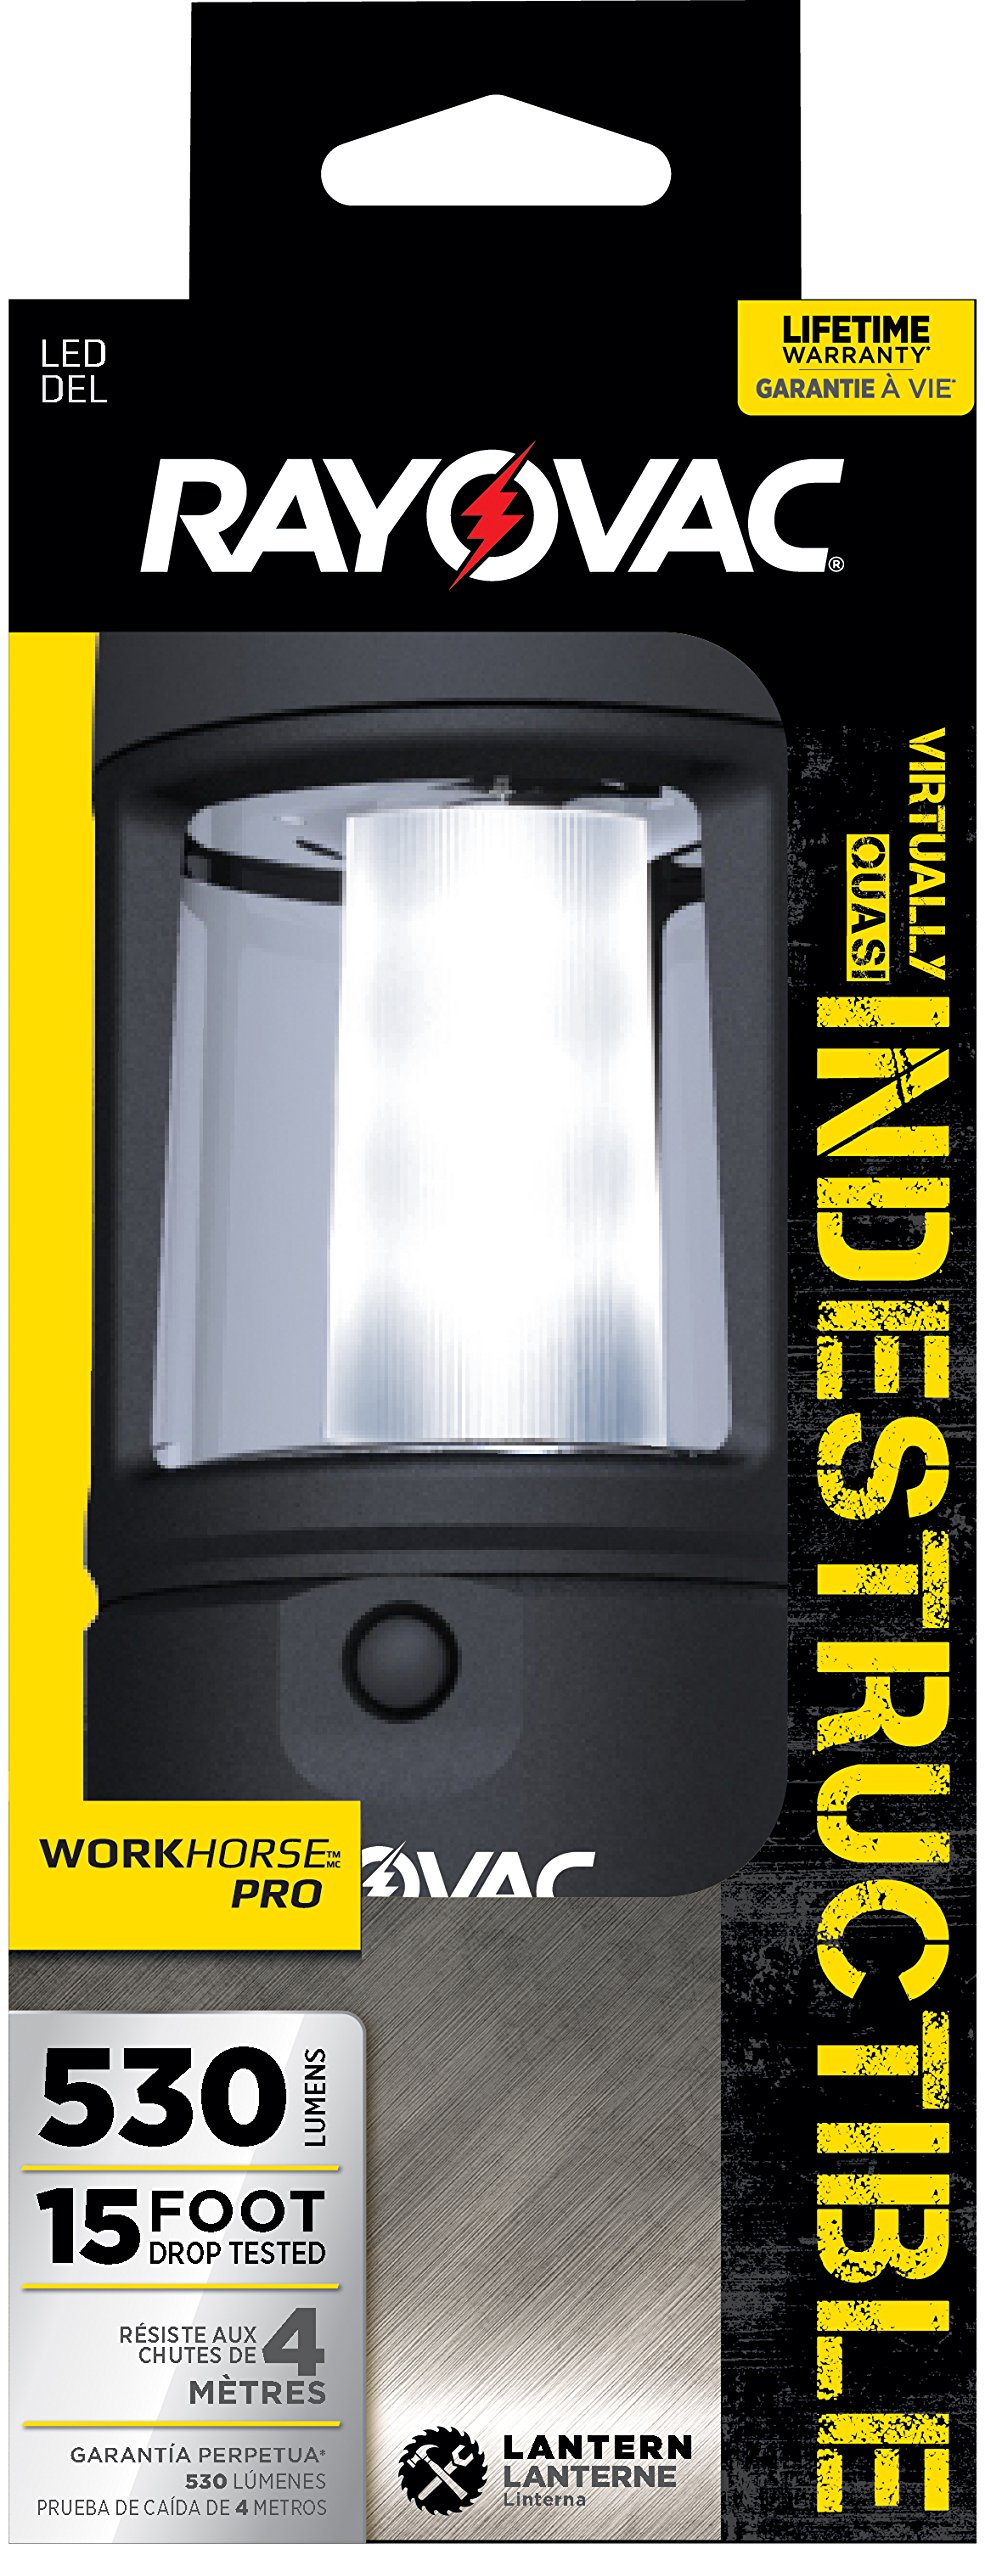 Rayovac diy3dln-B 3d LED INDESTRUCTIBLE Lantern with Battery